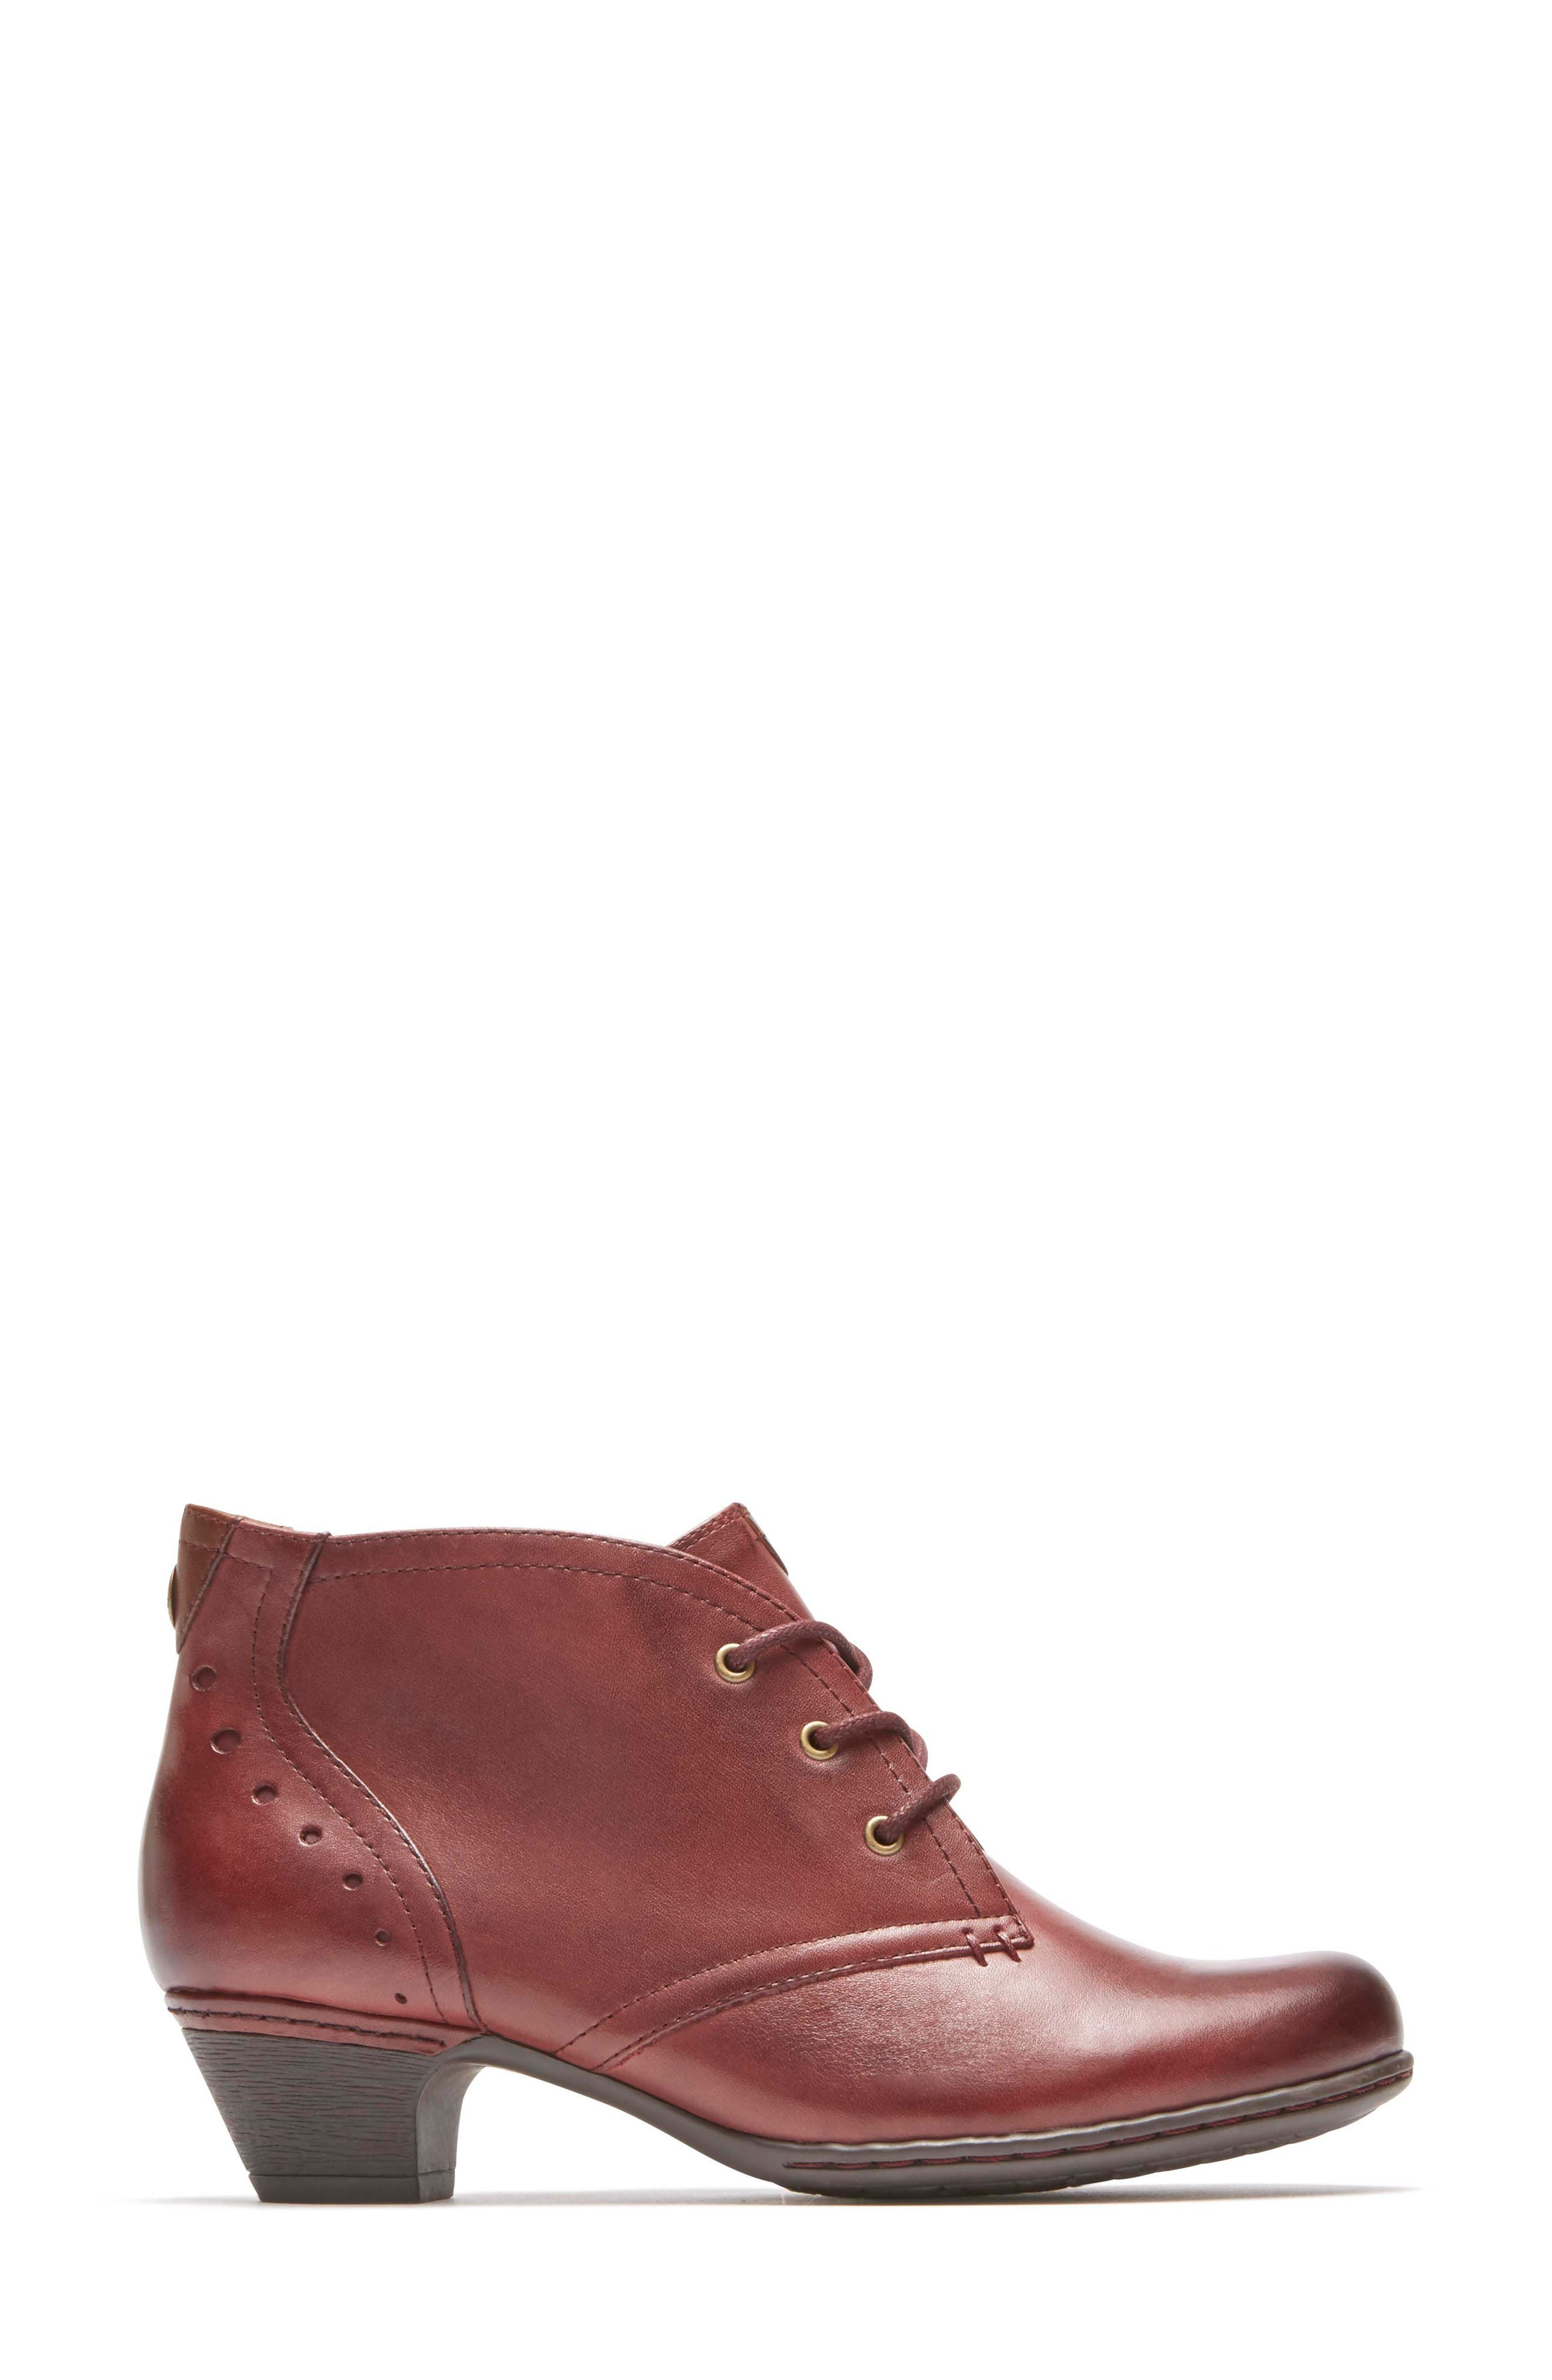 Aria Leather Boot,                             Alternate thumbnail 3, color,                             MERLOT LEATHER